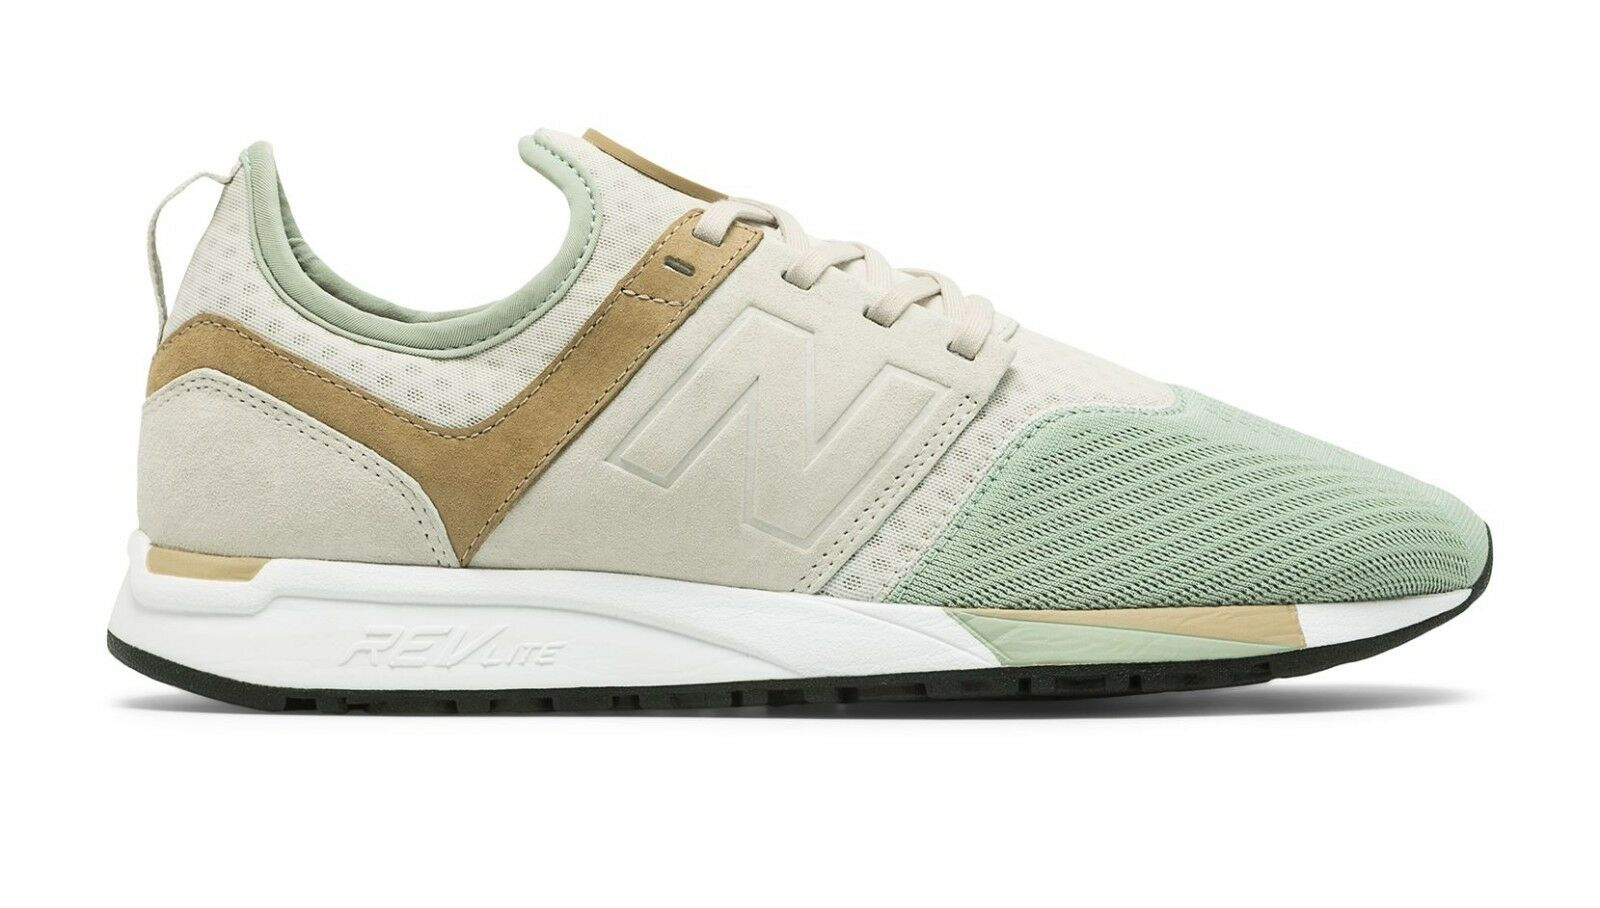 NIB New Balance MRL247SM 247 SPORT MOONBEAM MOONBEAM MOONBEAM Silber MINT LIFESTYLE Turnschuhe 8-13 897d14